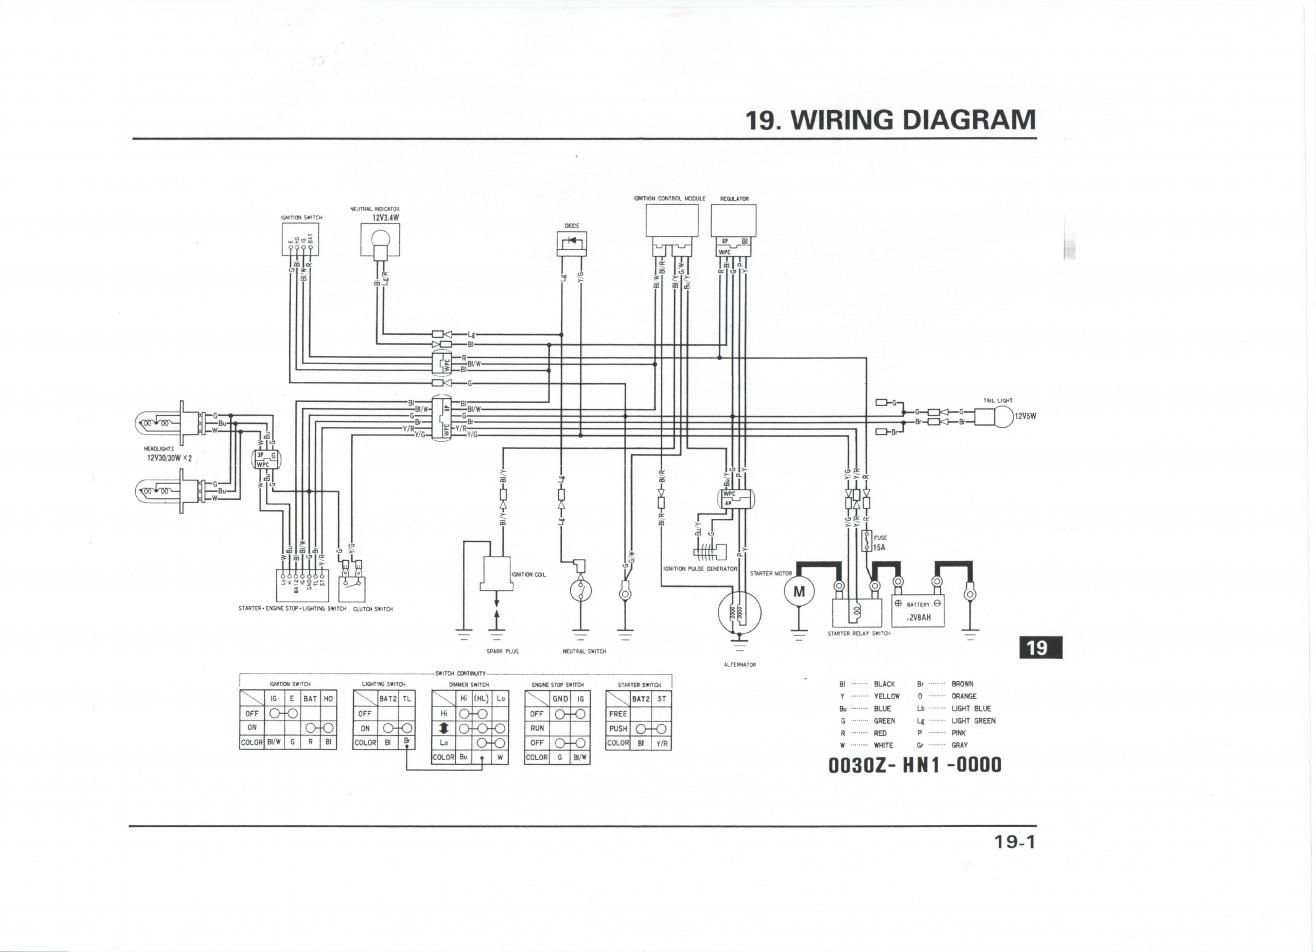 300ex wiring diagram wiring diagram for you crf450r wiring diagram 300ex wiring diagram [ 1316 x 952 Pixel ]